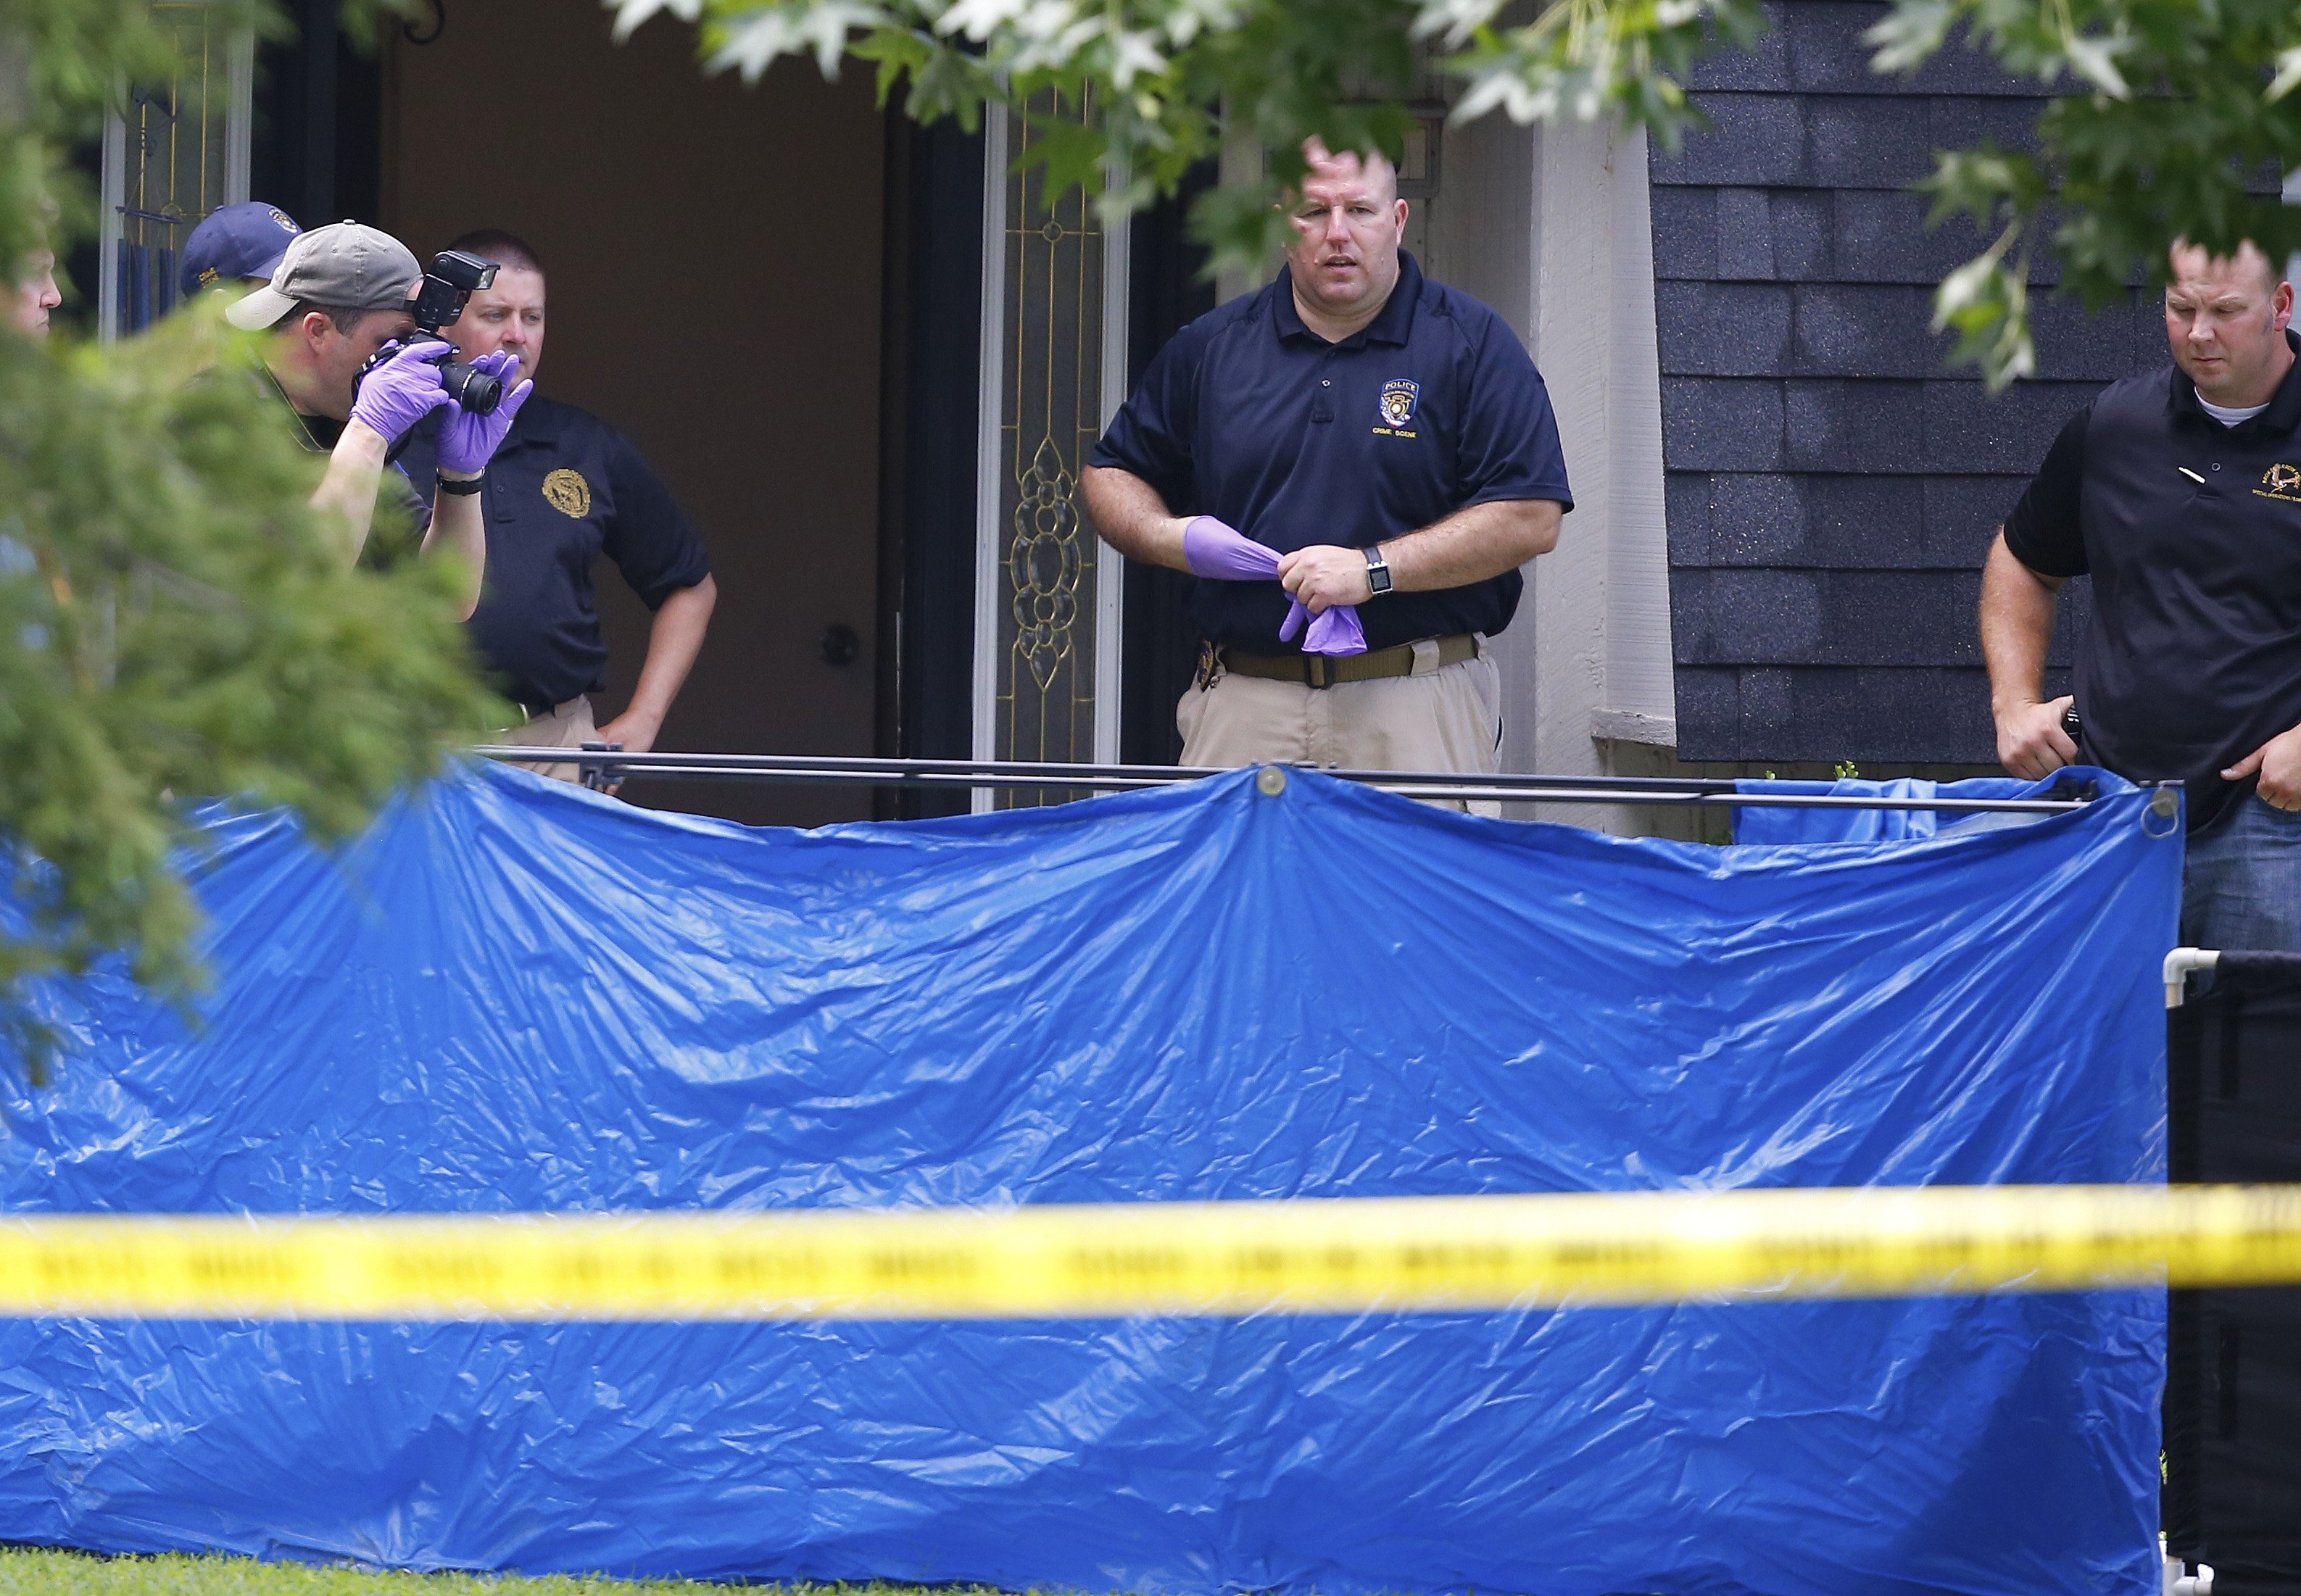 Brothers Charged With Killing Family May Have Had Plans on